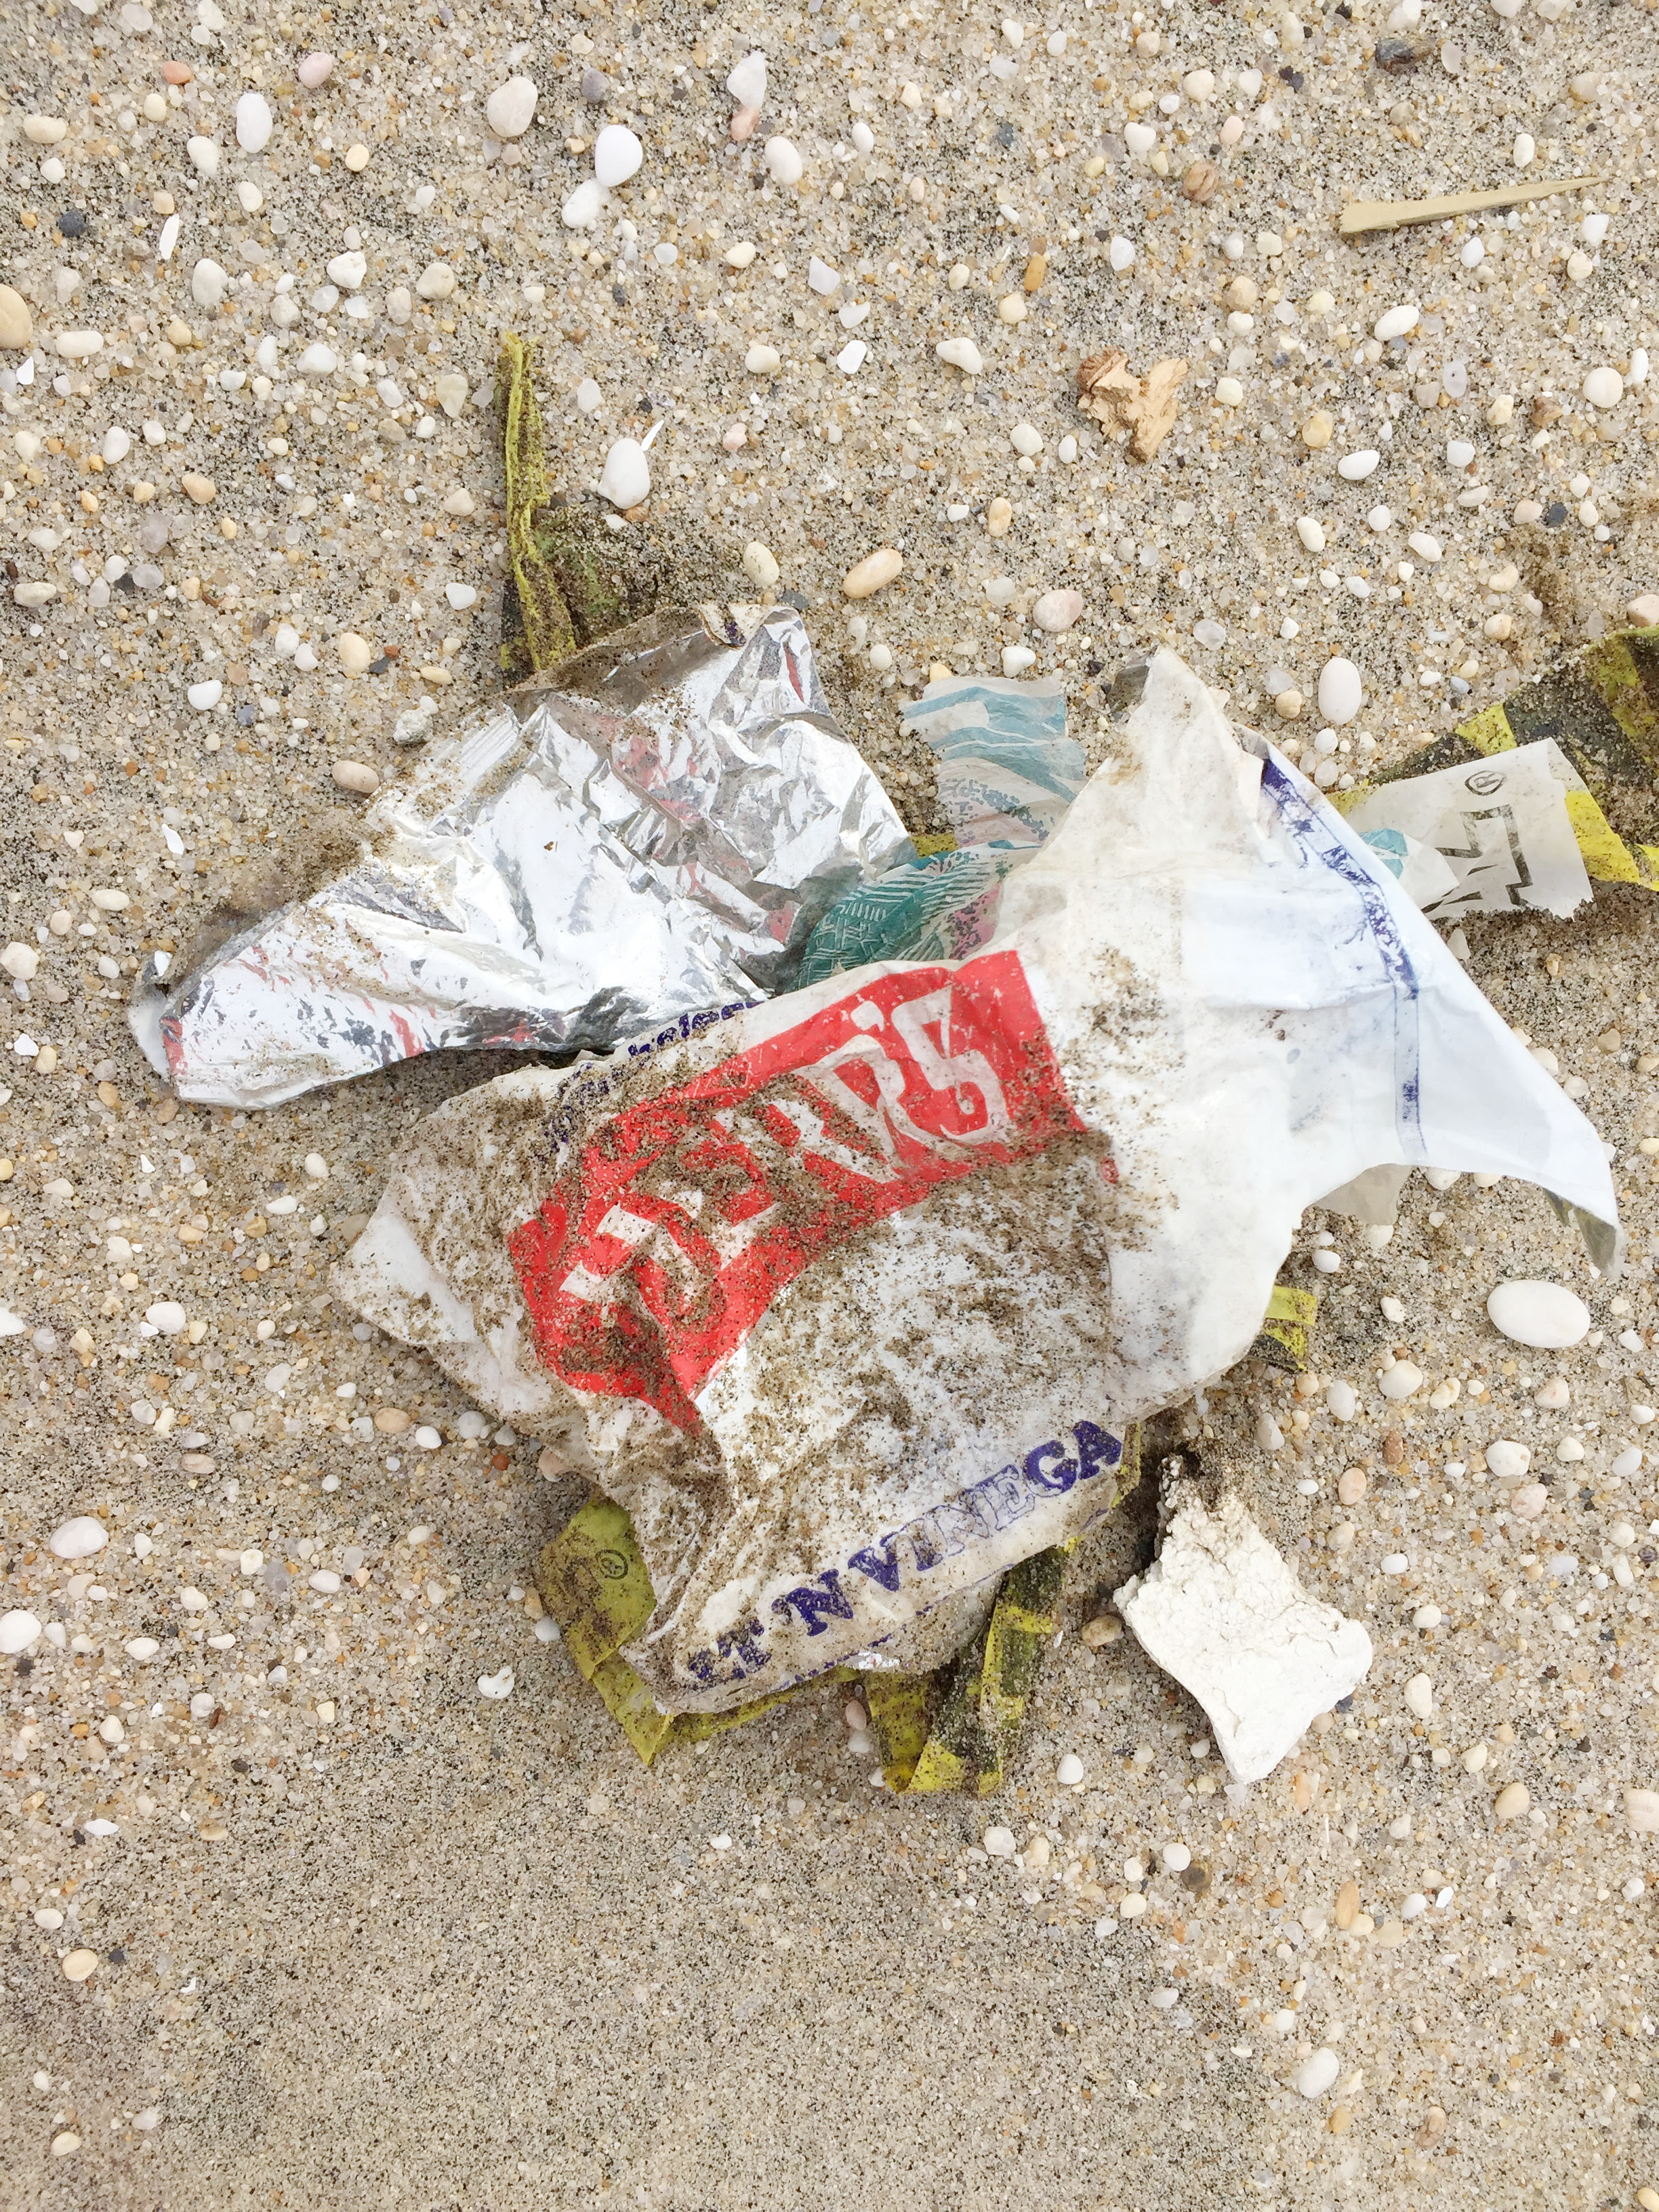 amy_chen_design_surfrider_asbury_park_new_jersey_beach_clean_plastic_food_packaging.JPG